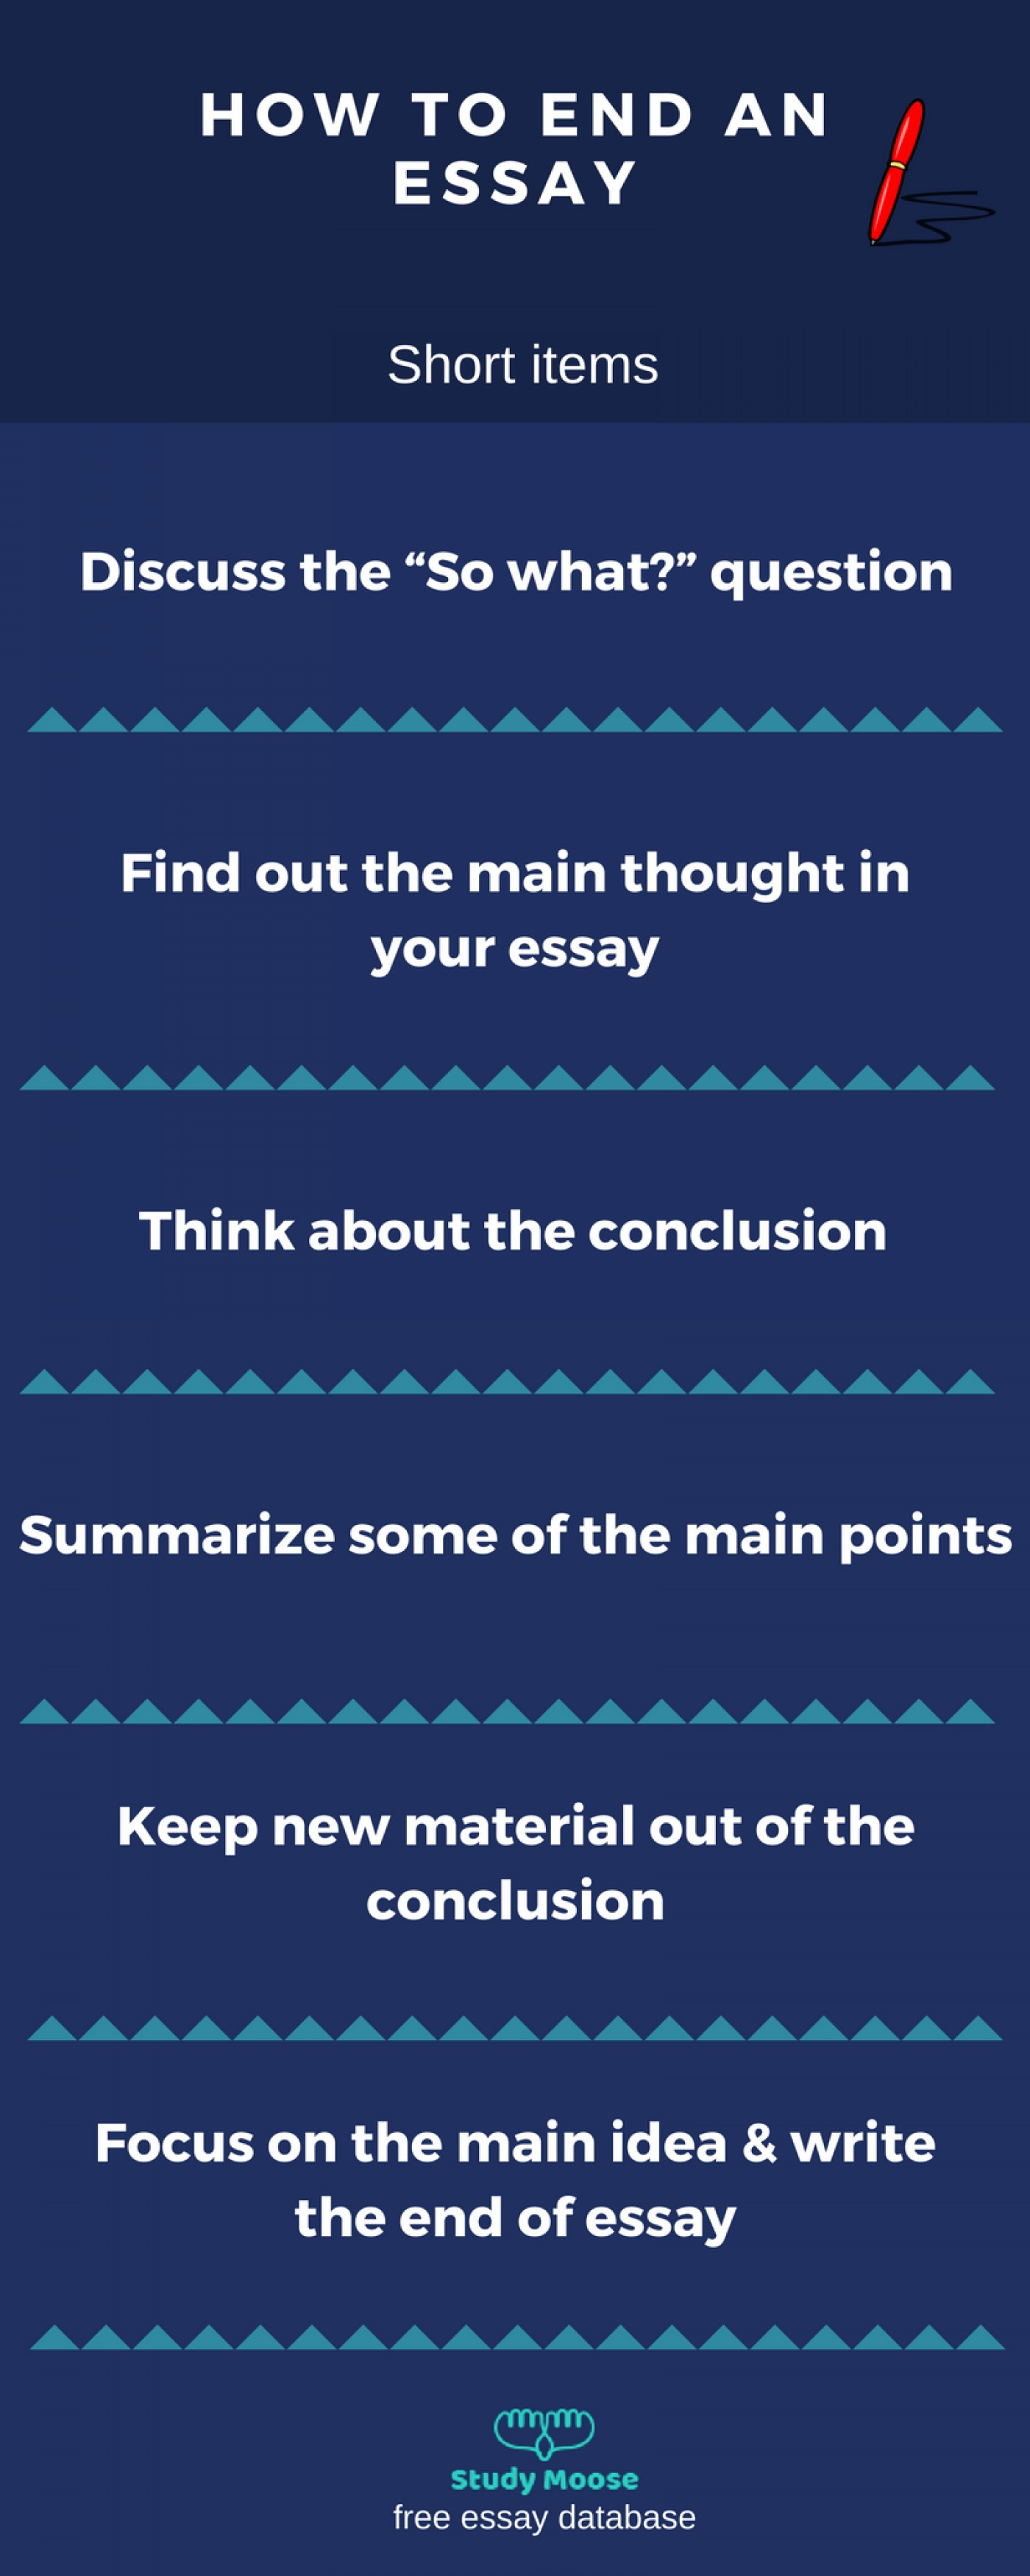 003 Essay Example Good Ways To End An Outstanding What's The Best Way What Is A Argumentative College 1400